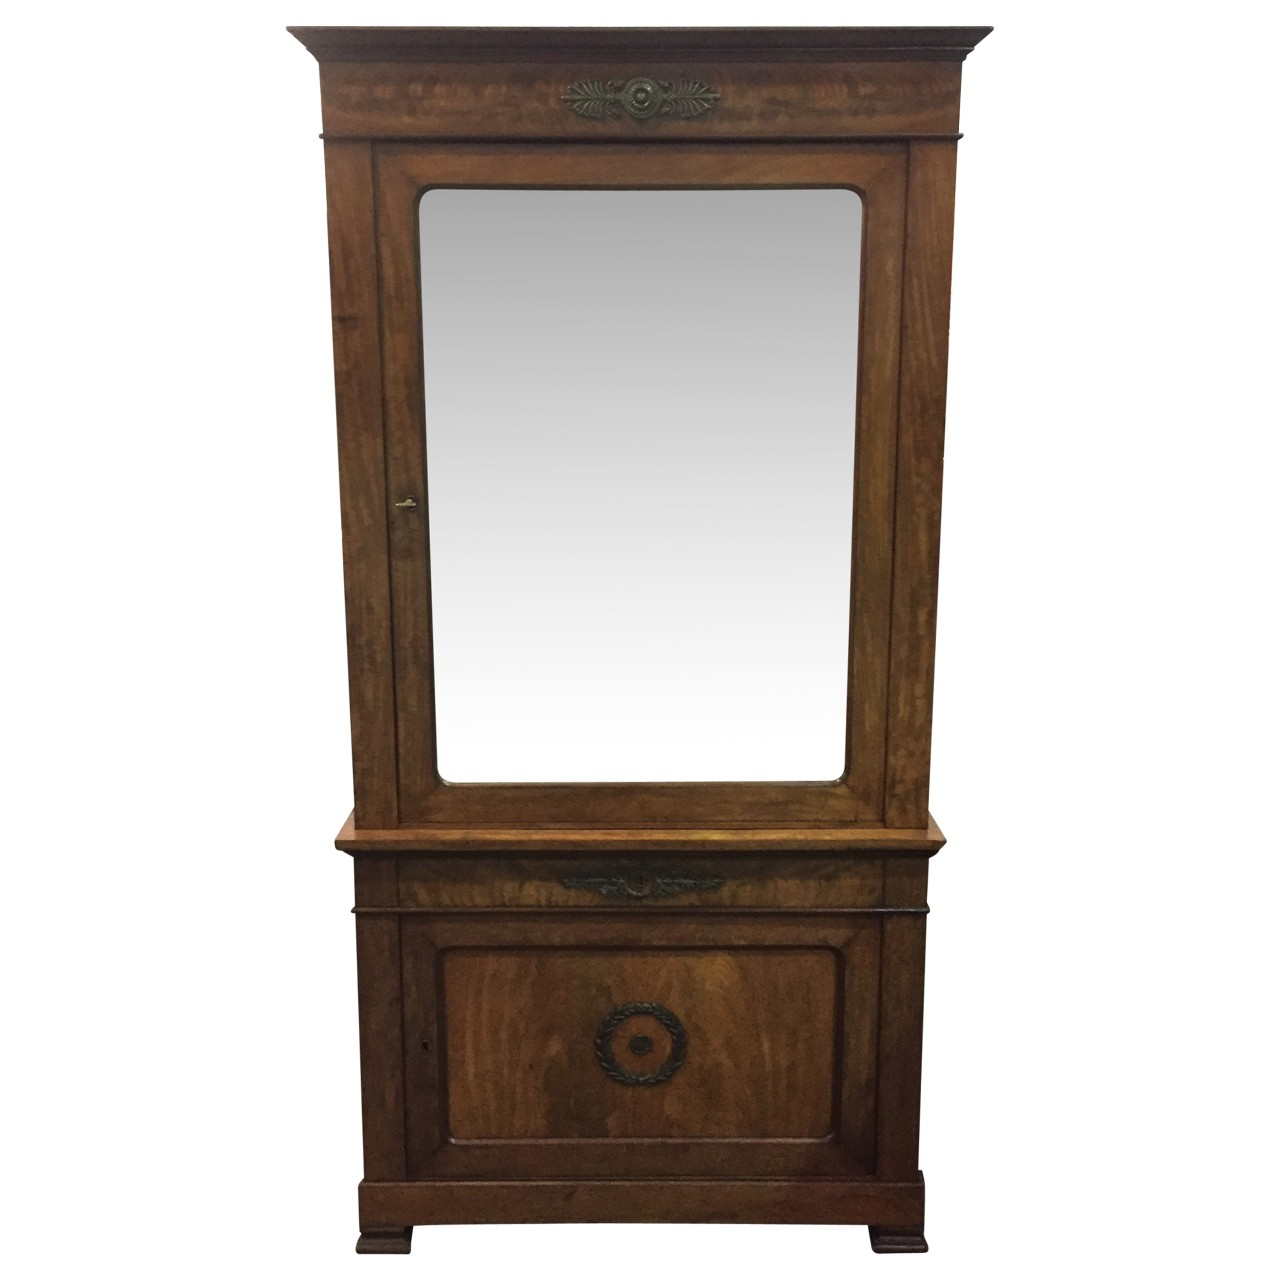 19th century French mahogany, mirror front cabinet. Ca 1840